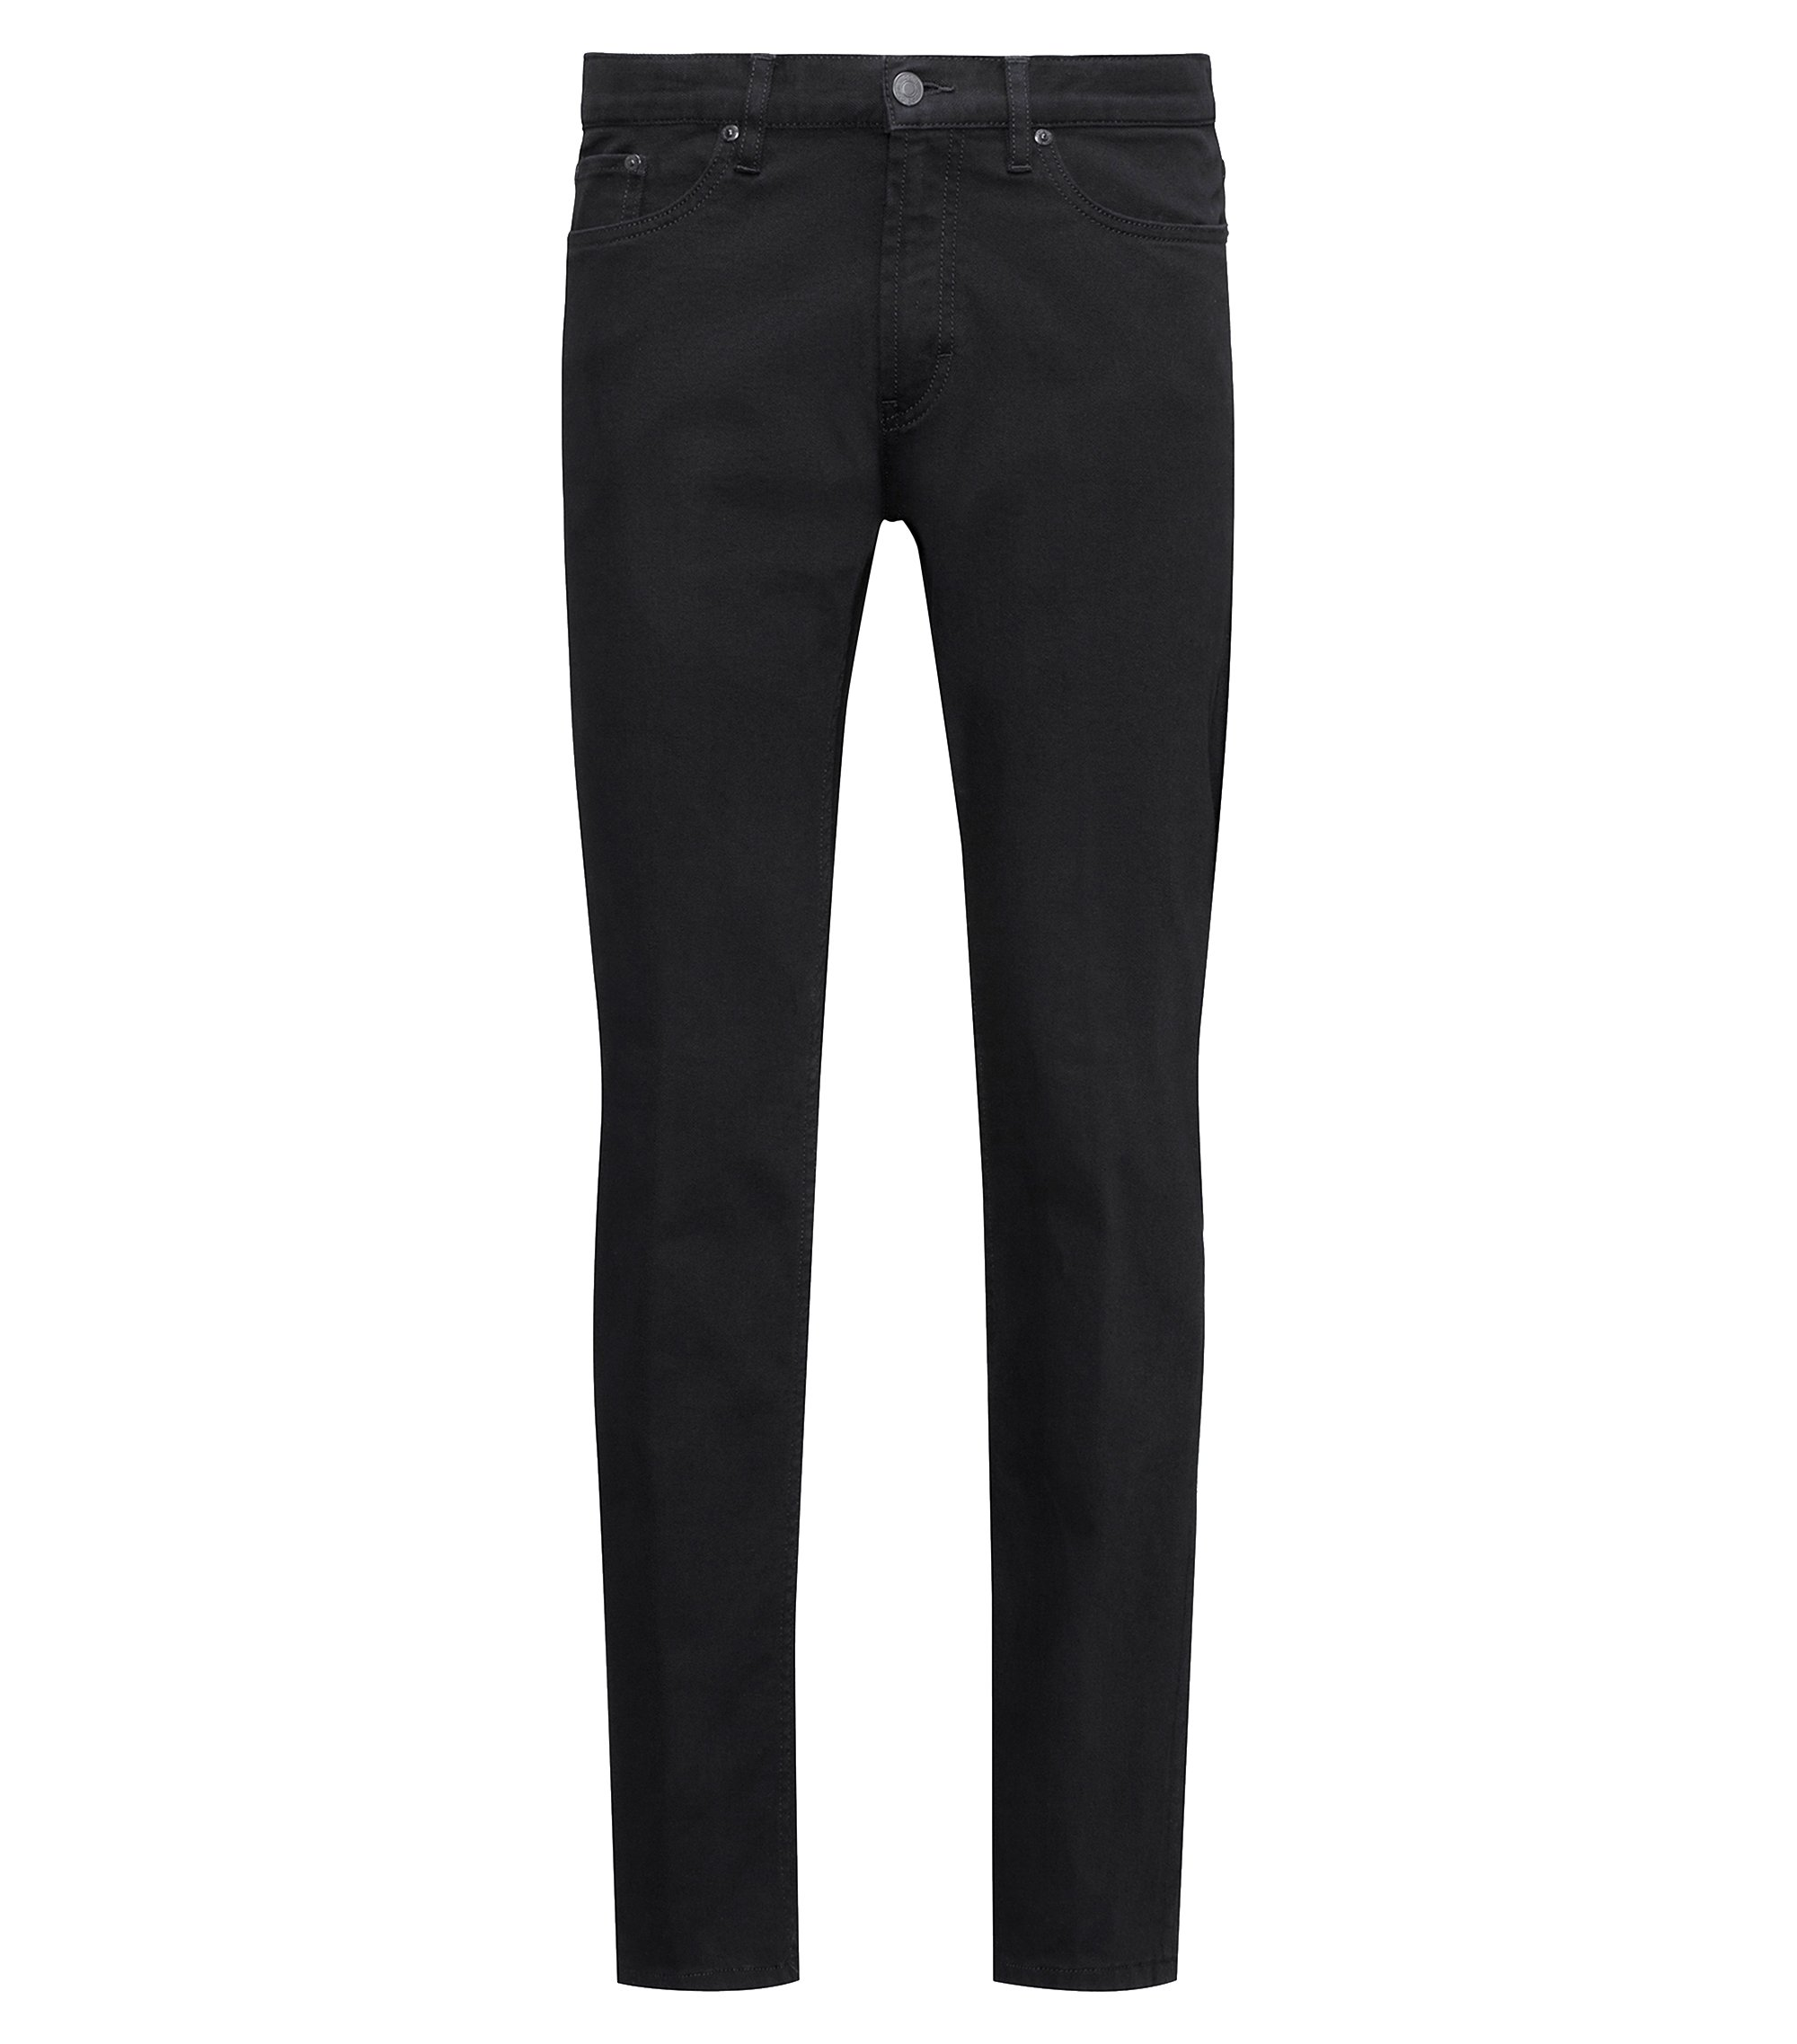 Stretch Cotton Jean, Regular Fit | HUGO 677, Black